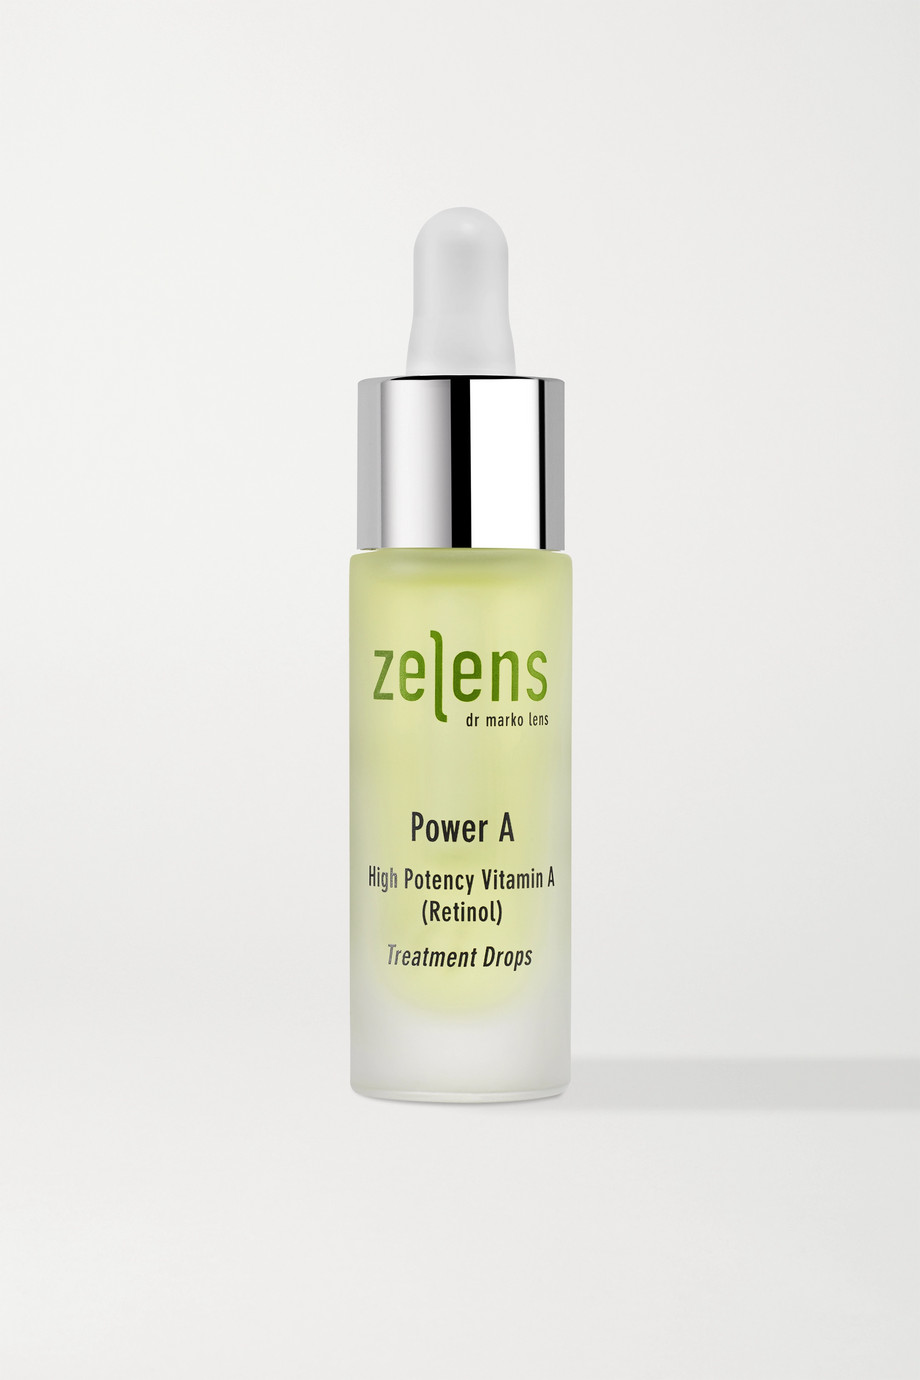 ZELENS Power A Treatment Drops, 10ml